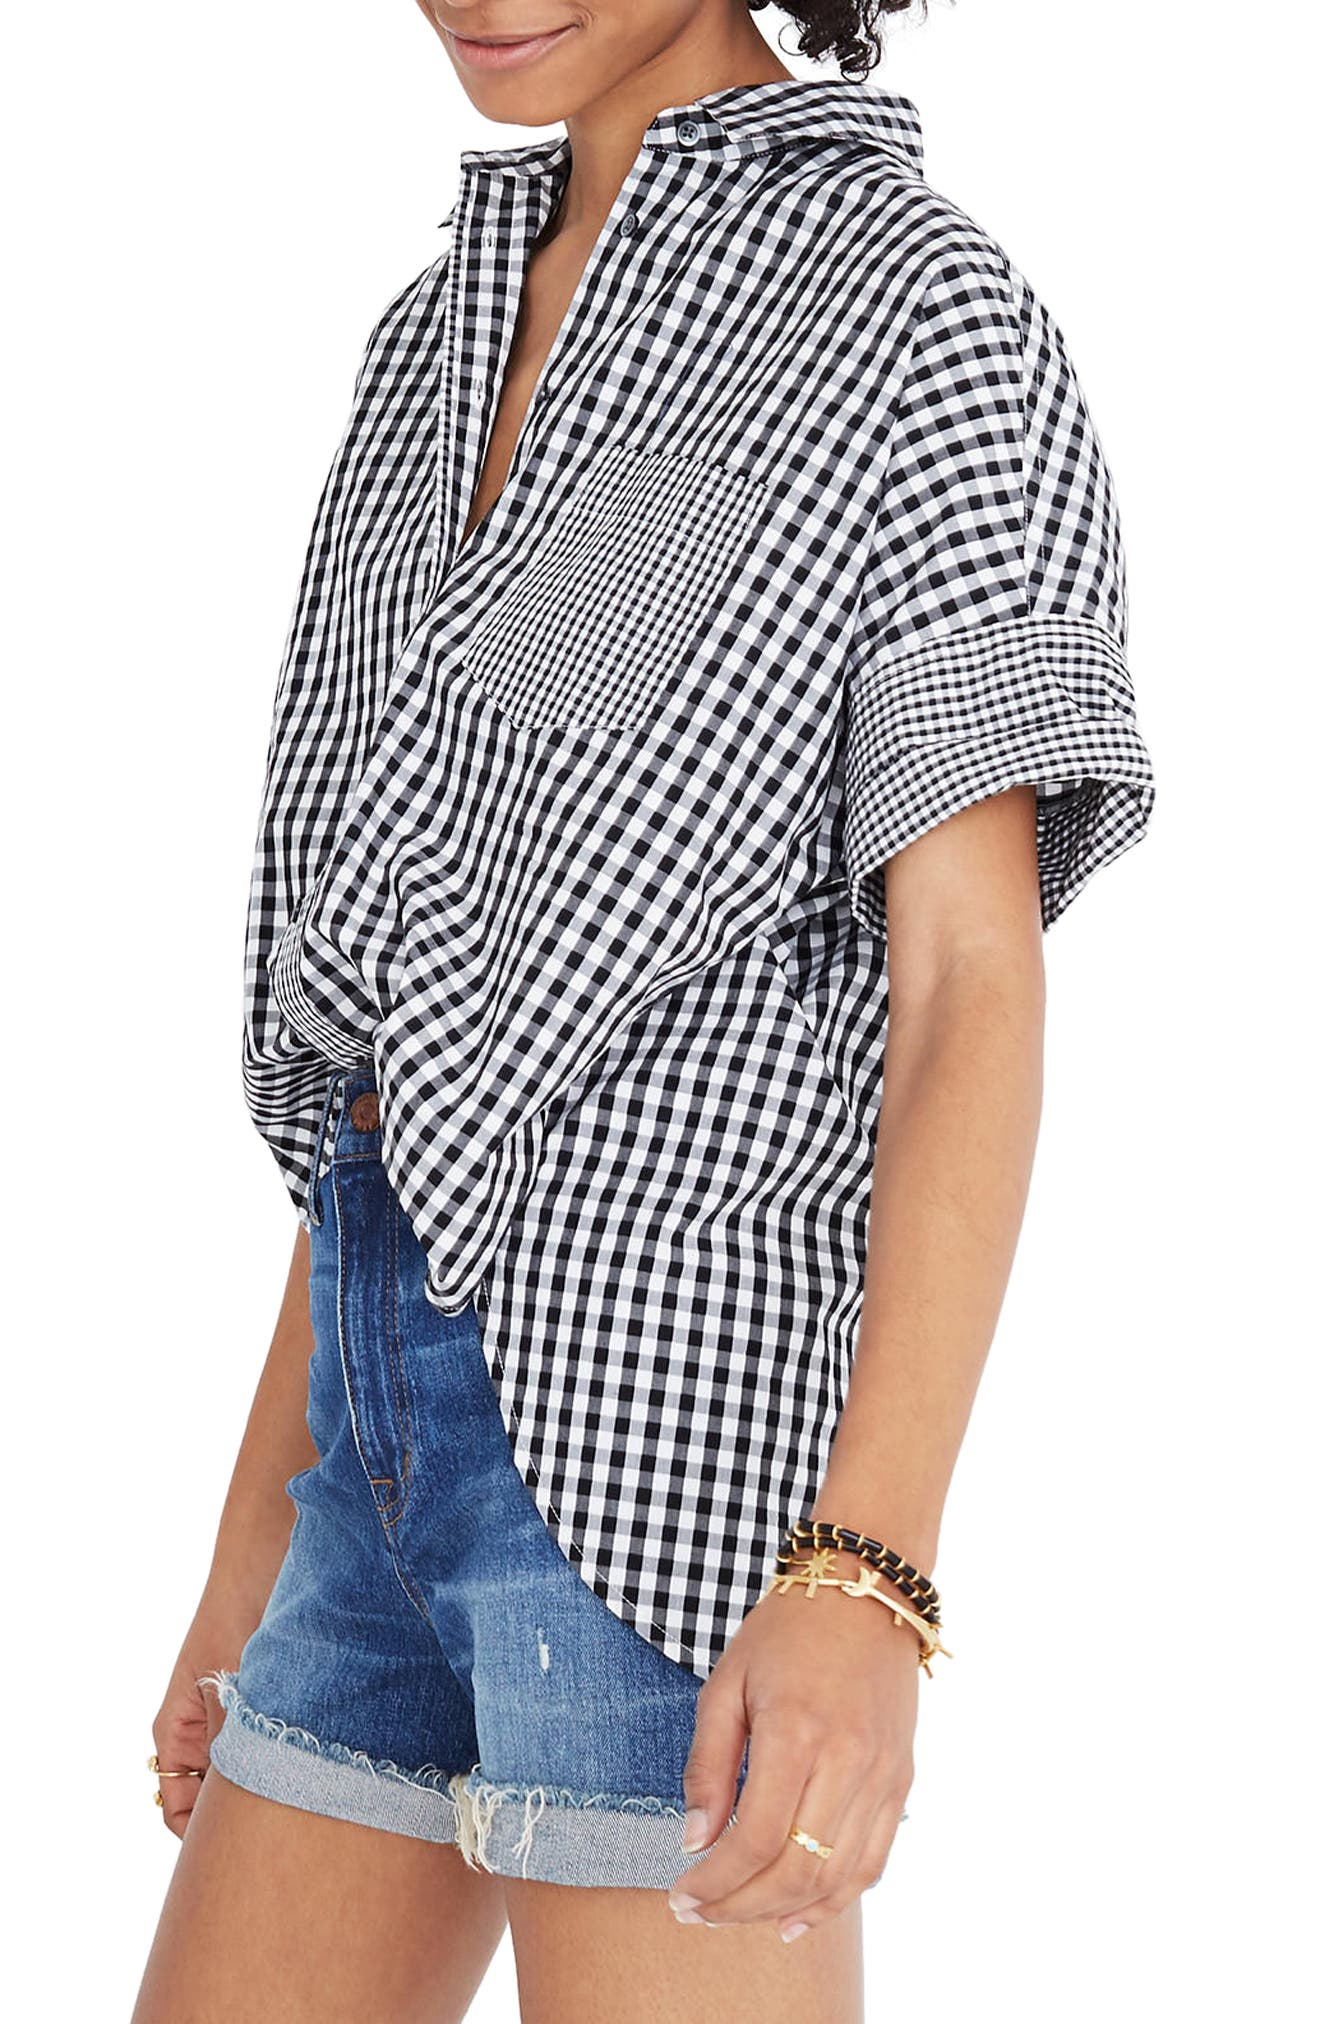 Madewell Gingham Play Button Down Shirt